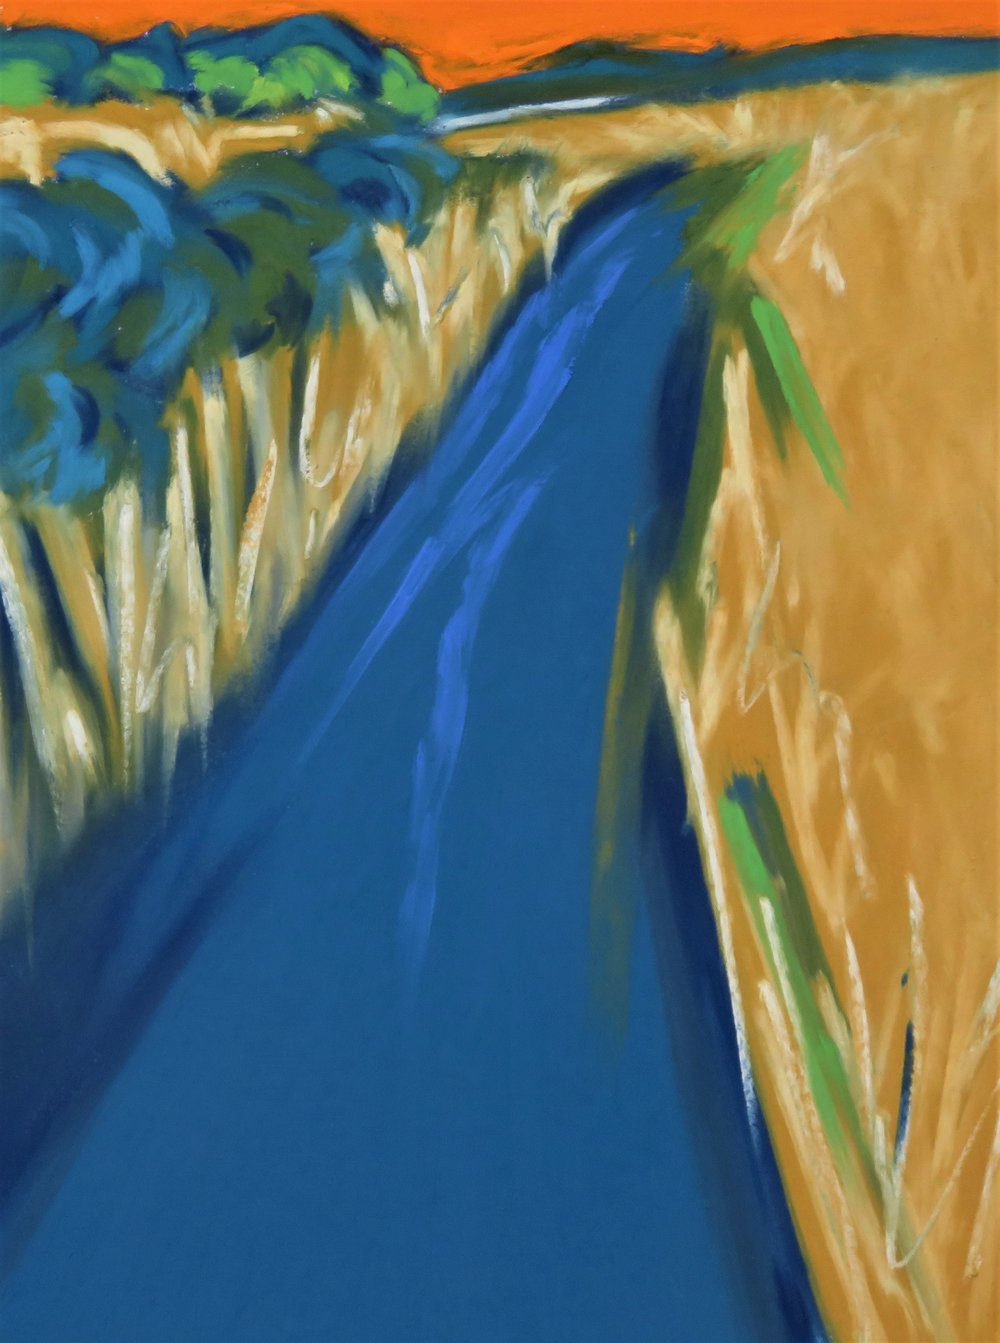 Through The Reed Beds - Slapton Ley (SOLD)